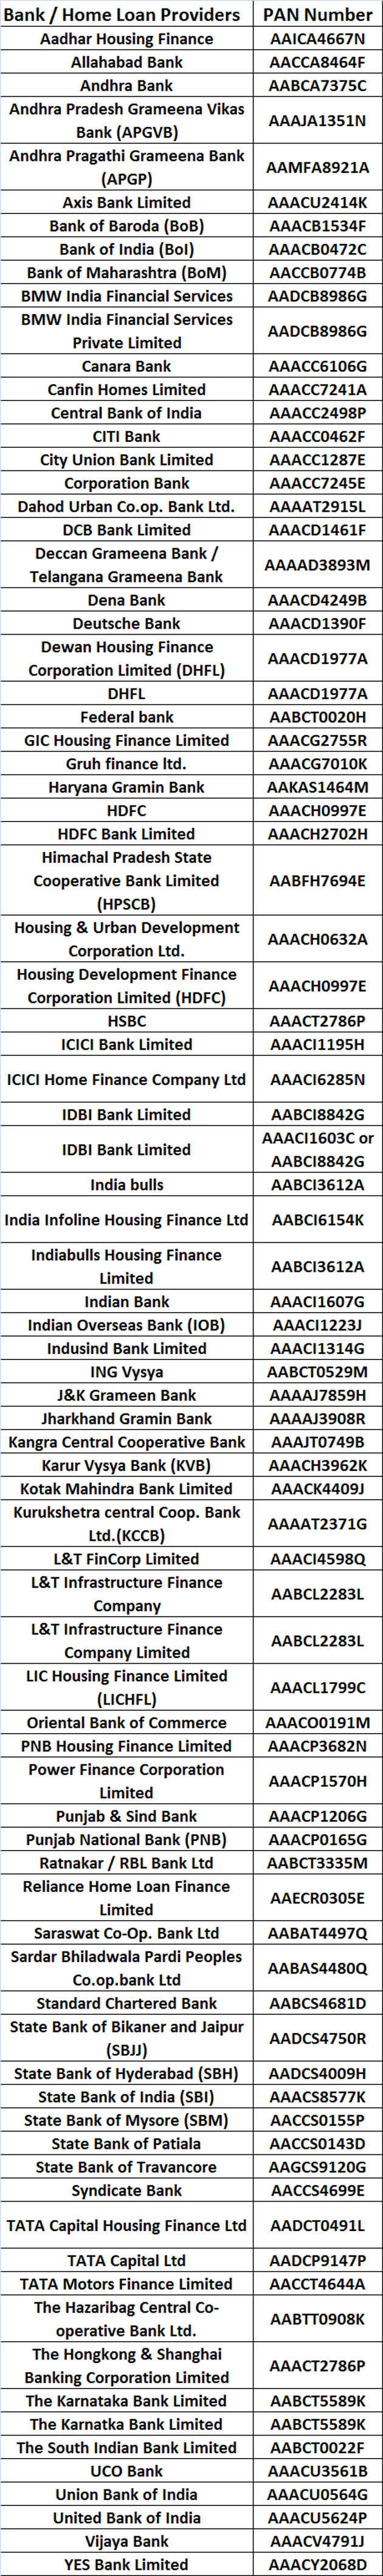 Need PAN of your bank to avail home loan benefit? Here's the list